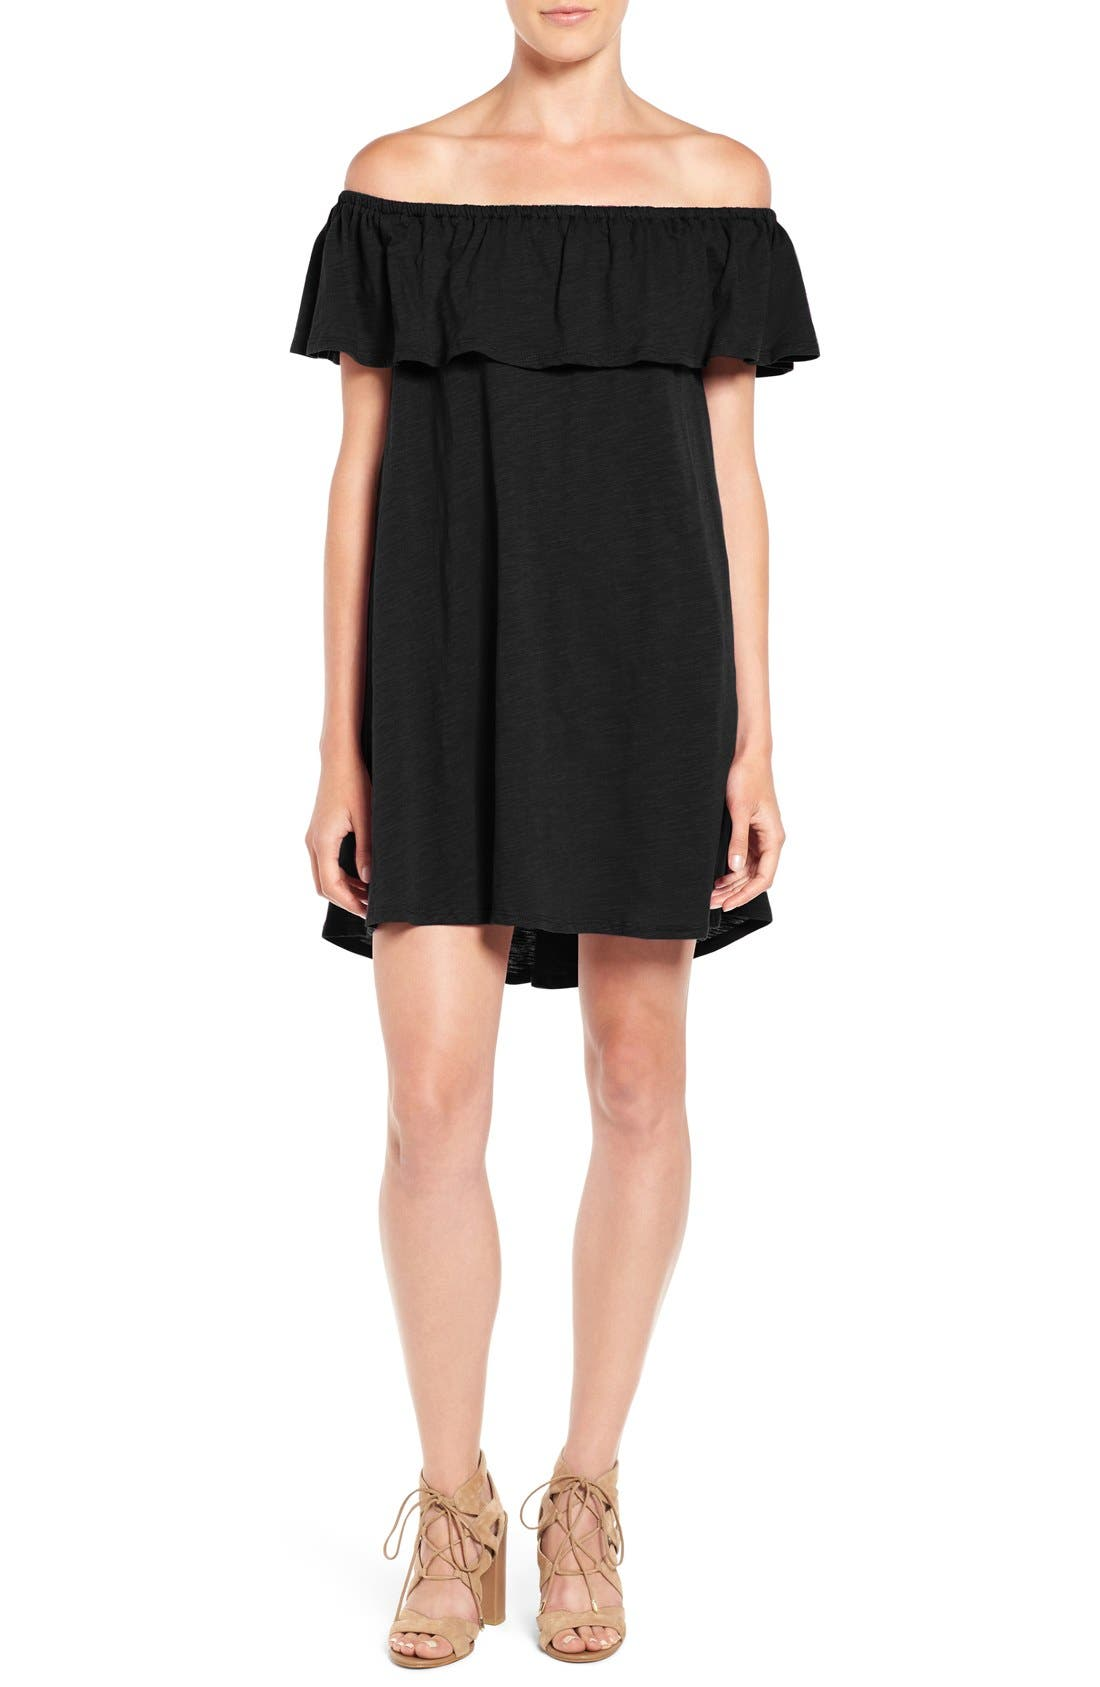 REBECCA MINKOFF, 'Diosa' Cotton Off the Shoulder Dress, Main thumbnail 1, color, 001